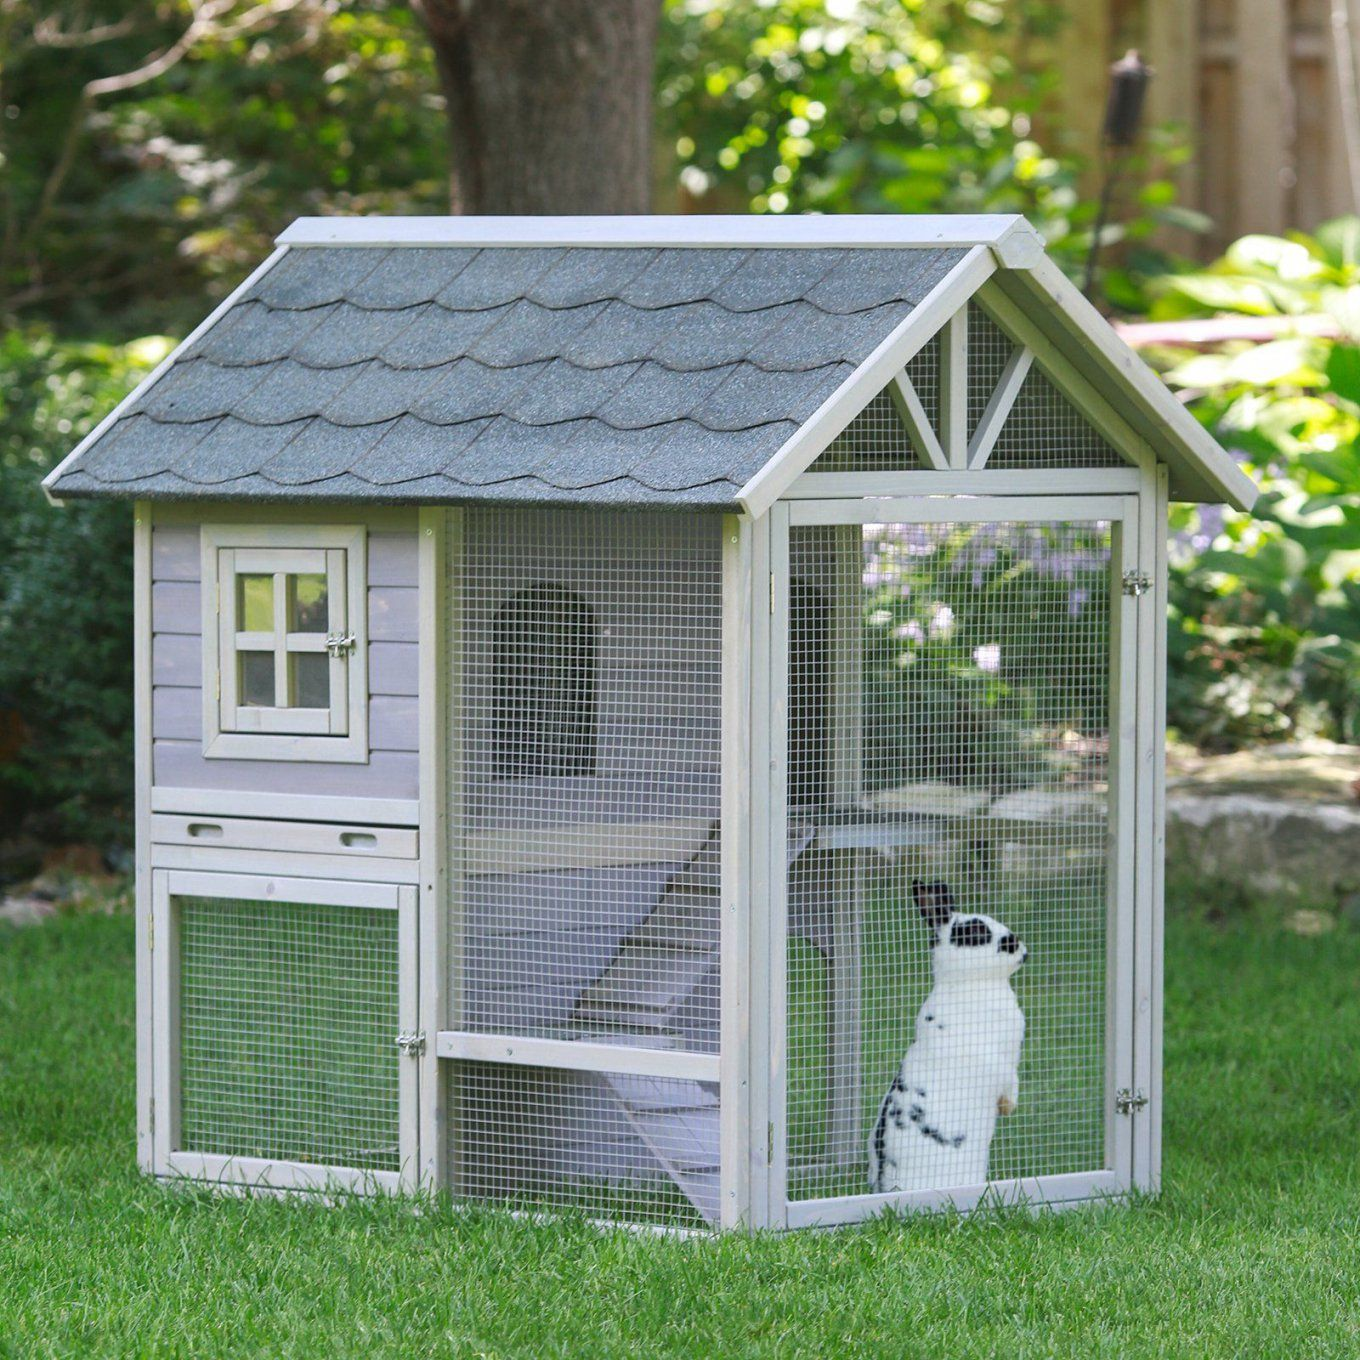 Boomer & George Tiered Outdoor Rabbit Hutch With Run  From von Boomer And George Rabbit Hutch Photo